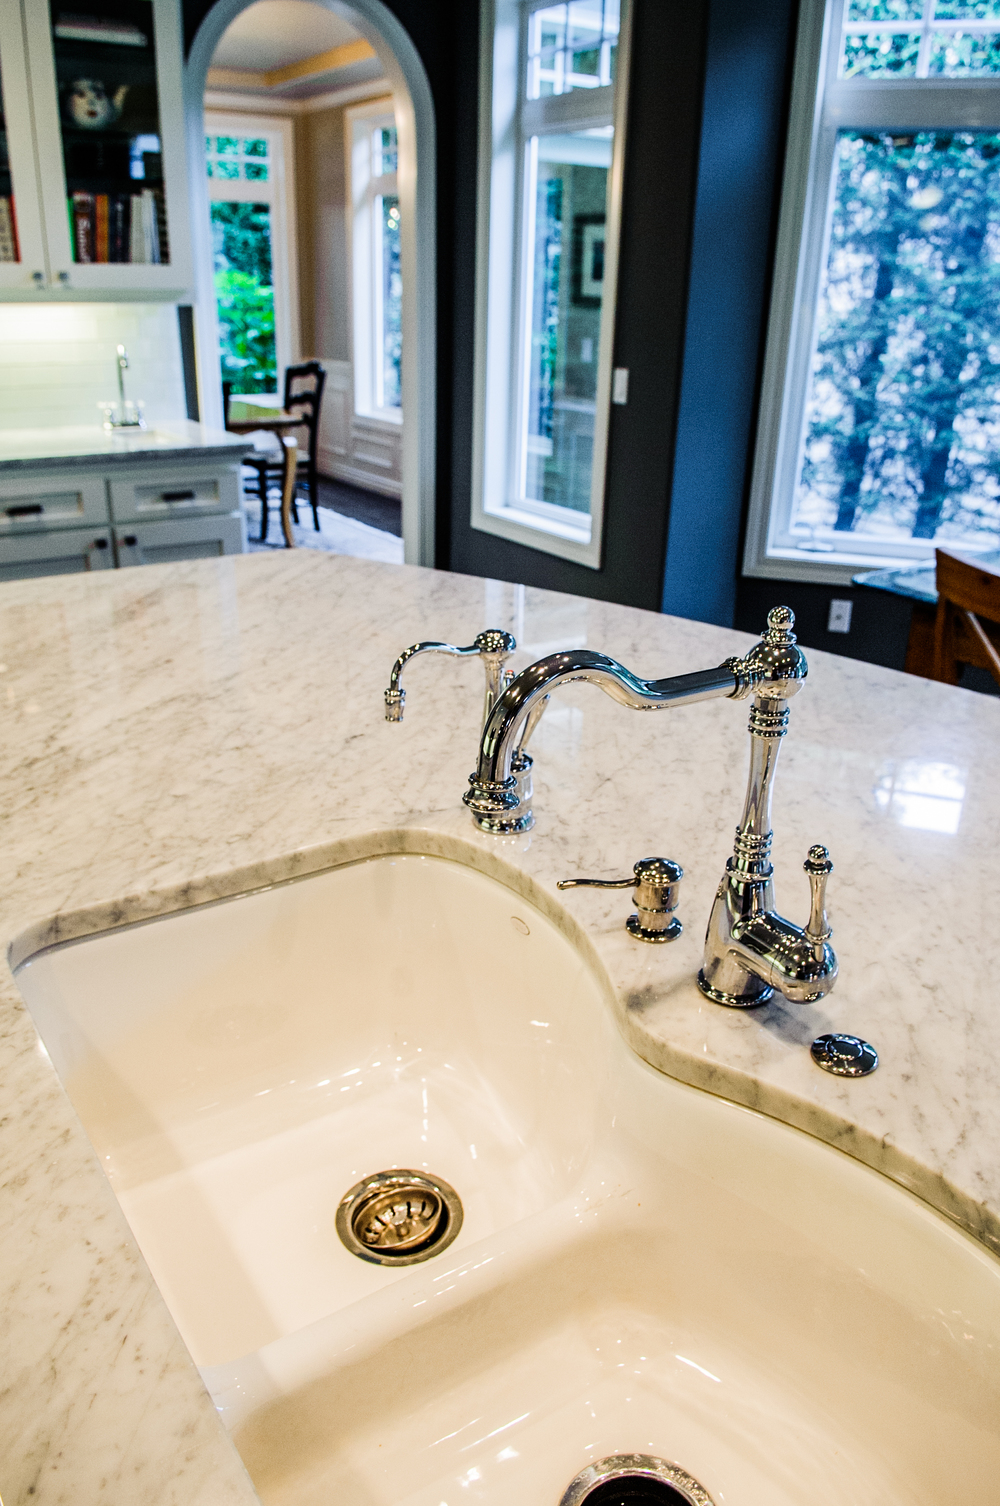 Main sink gets new life with few faucets.